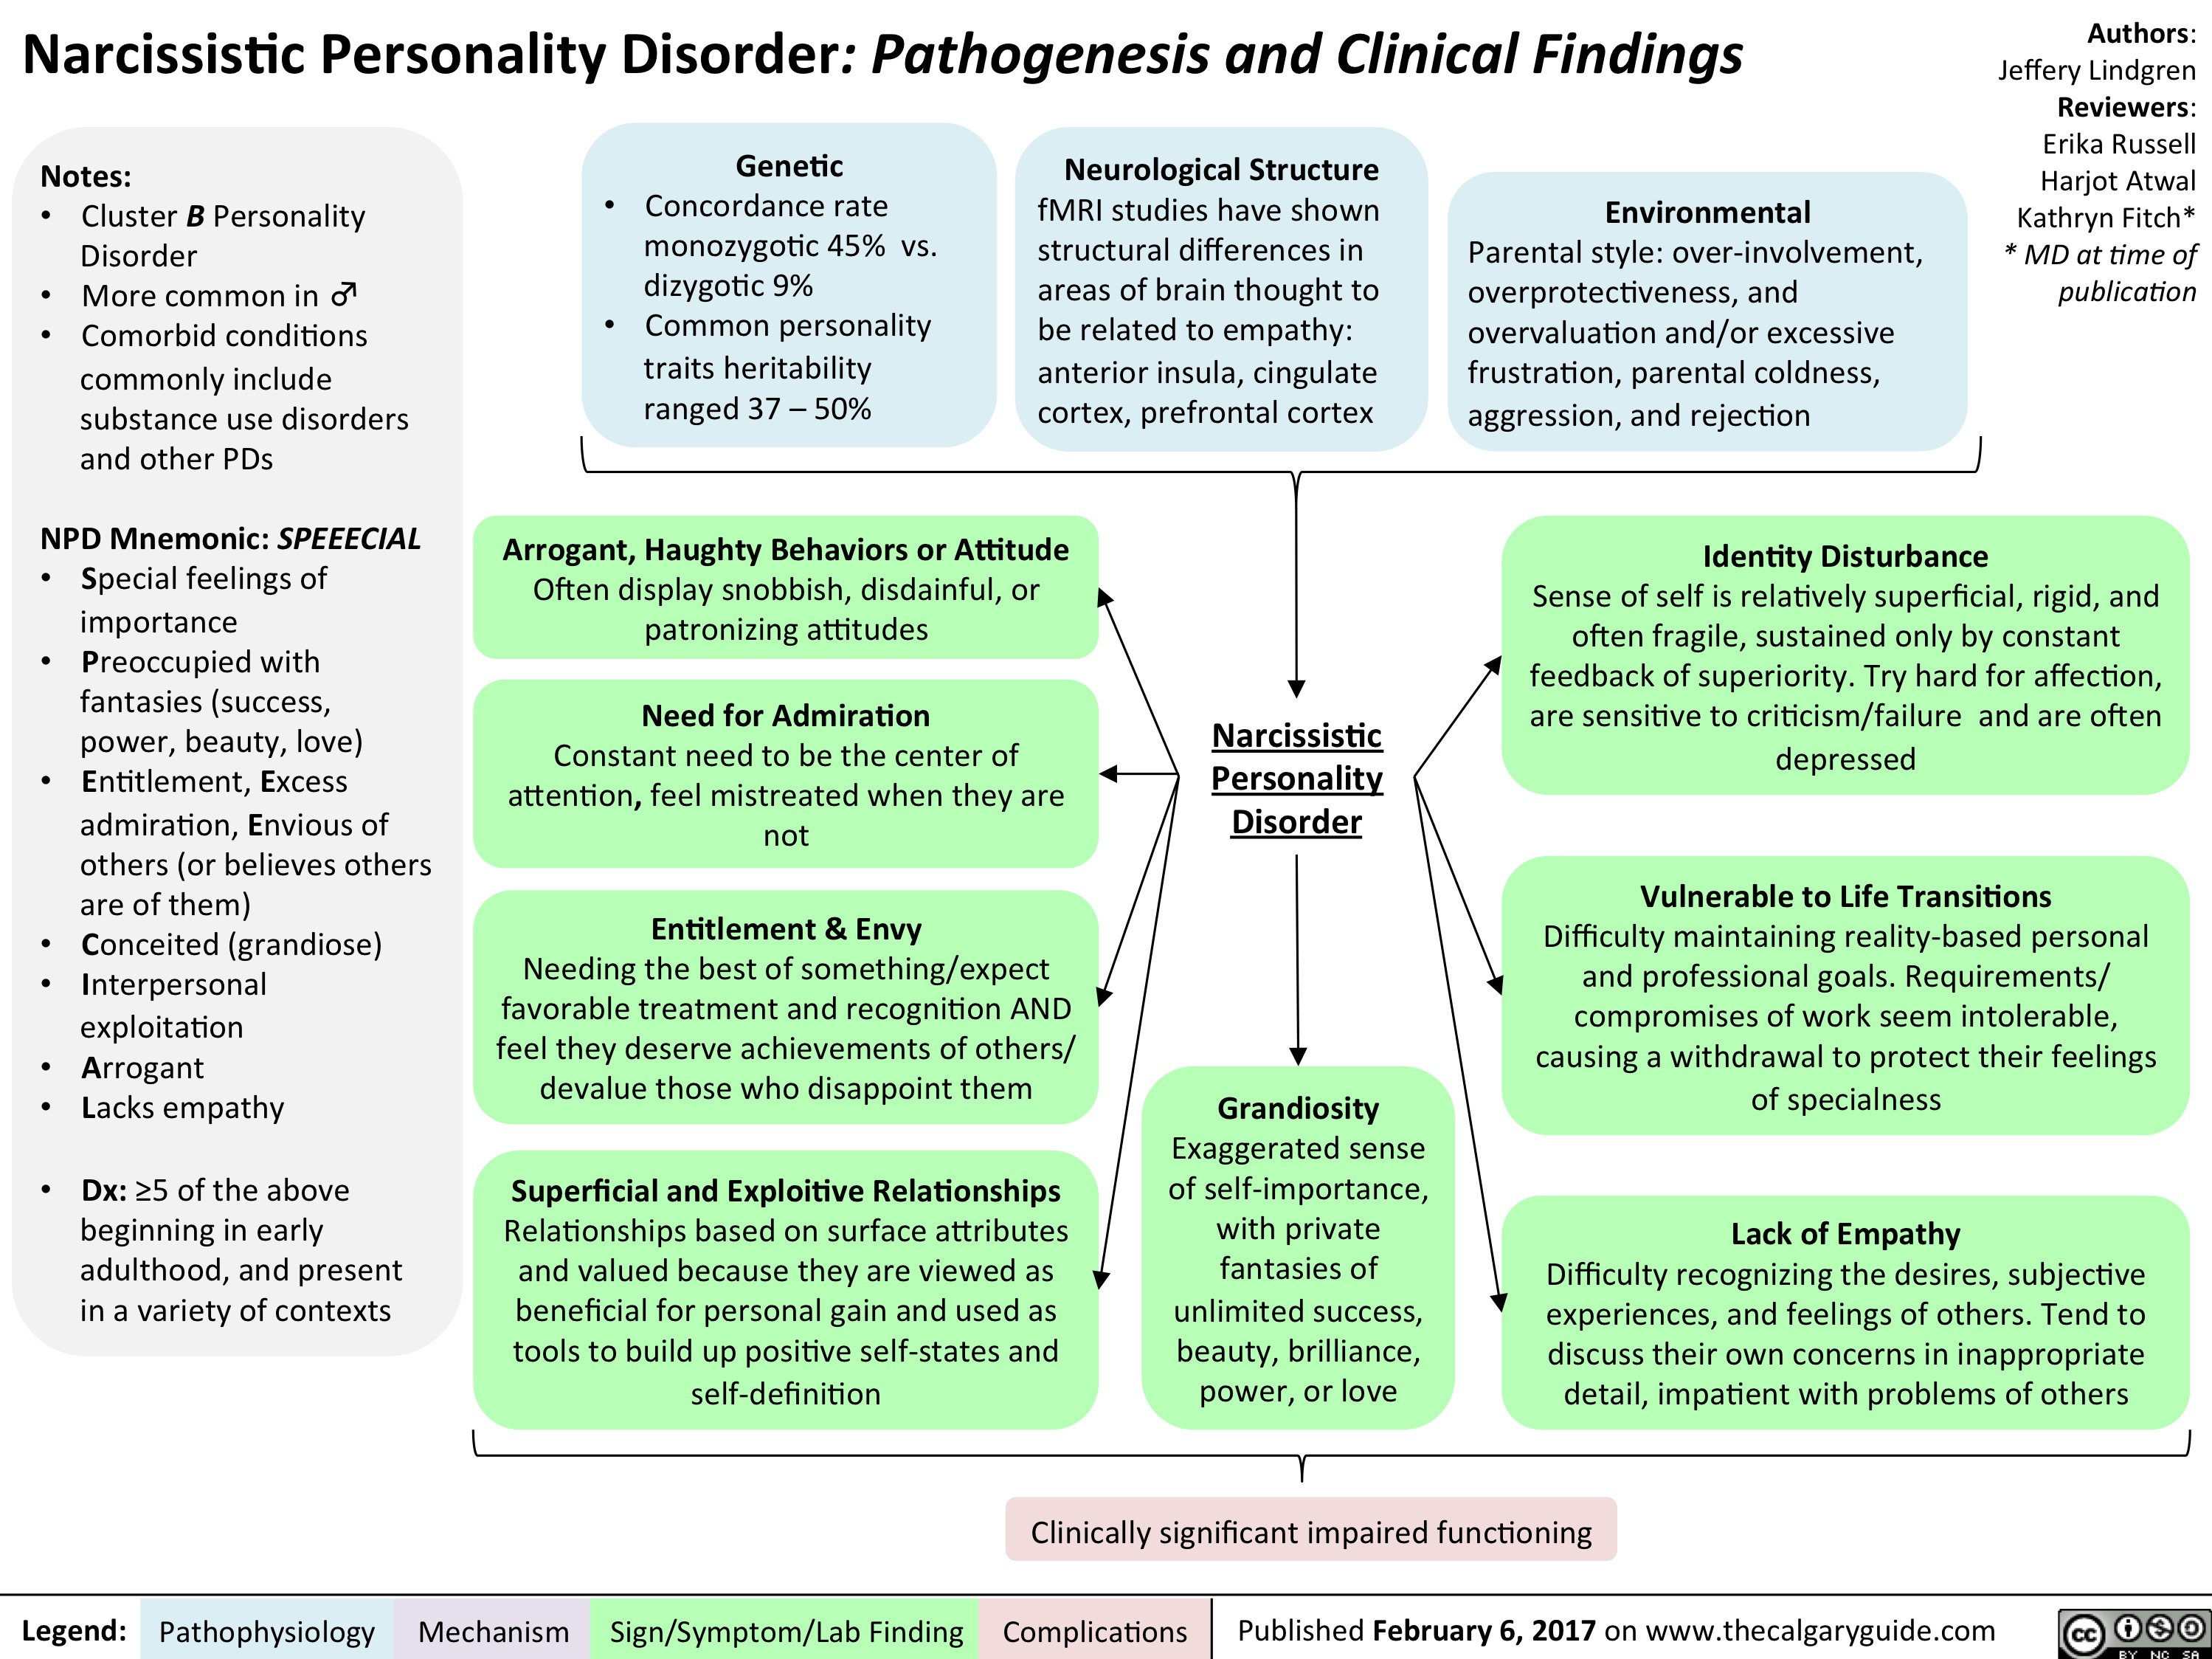 Narcissistic Personality Disorder: Pathogenesis and